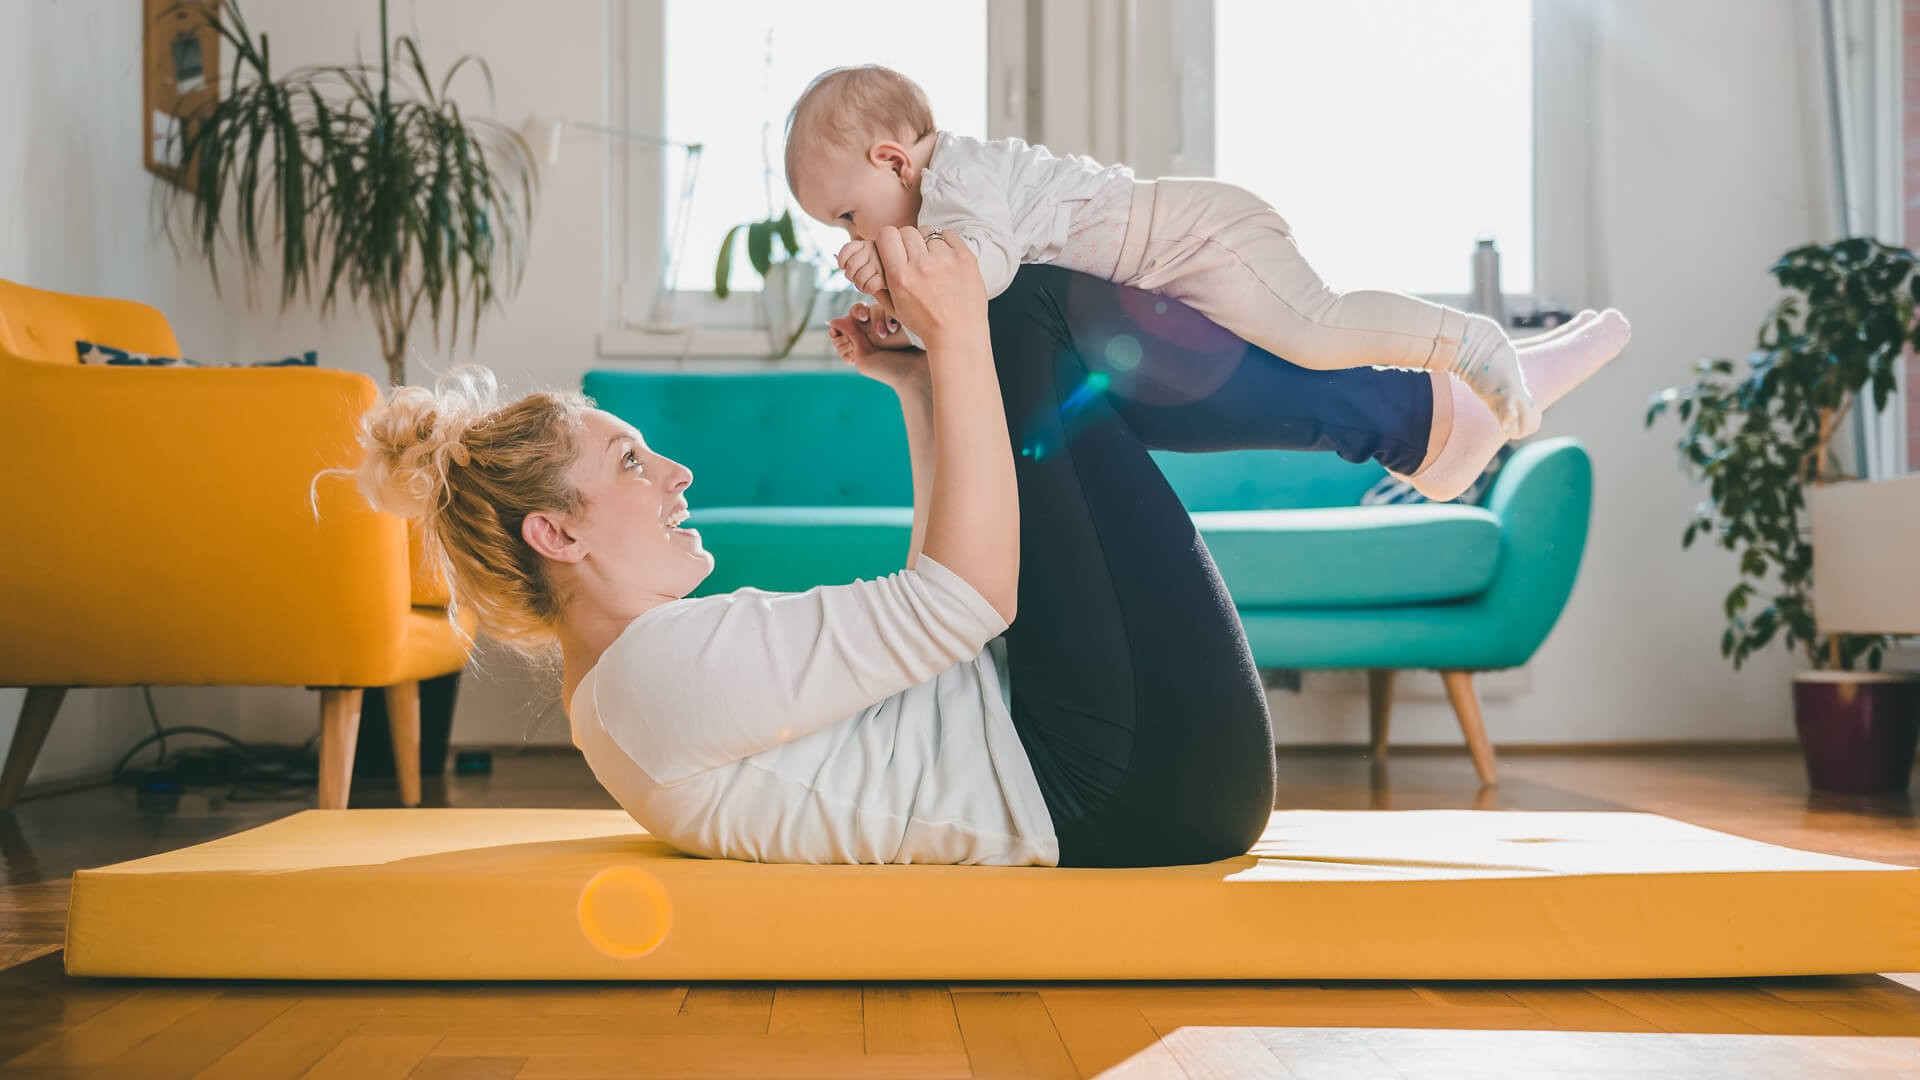 Mother Exercise With Her Baby on yellow mat At Home.